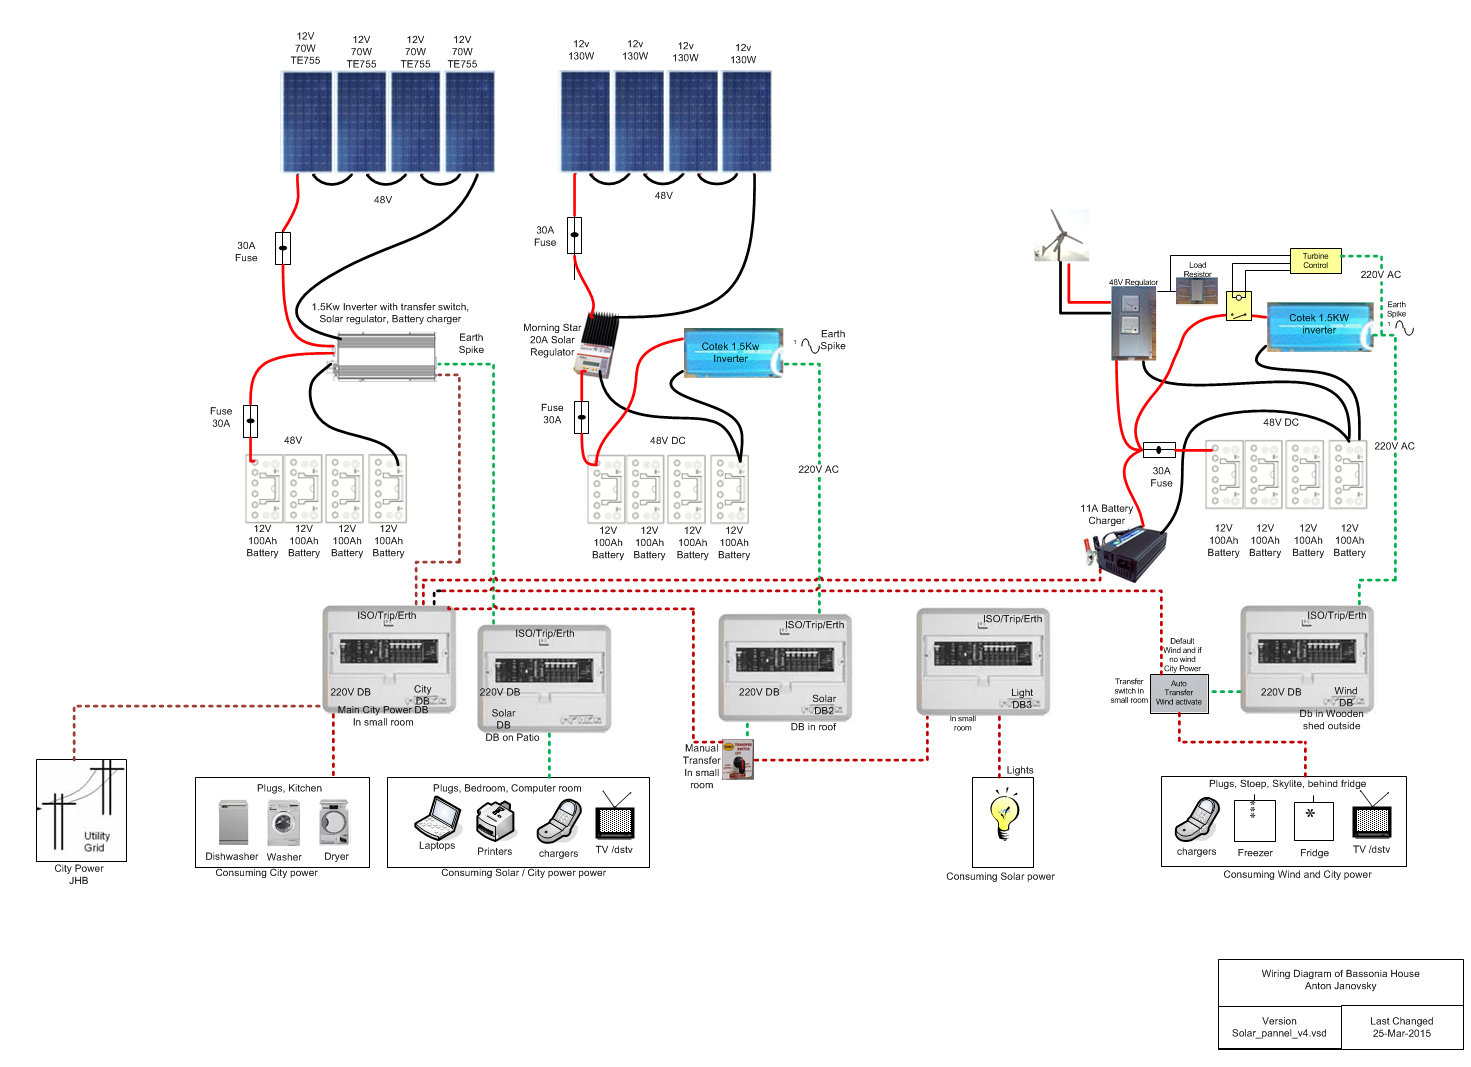 Cotek Inverter Wiring Diagram Good Place To Get Puresinewaveinverterdiagrampng Anton Janovsky 1kw Wind Turbine In Bassonia Johannesburg Rh Blogspot Com Aims Pure Sine Circuit